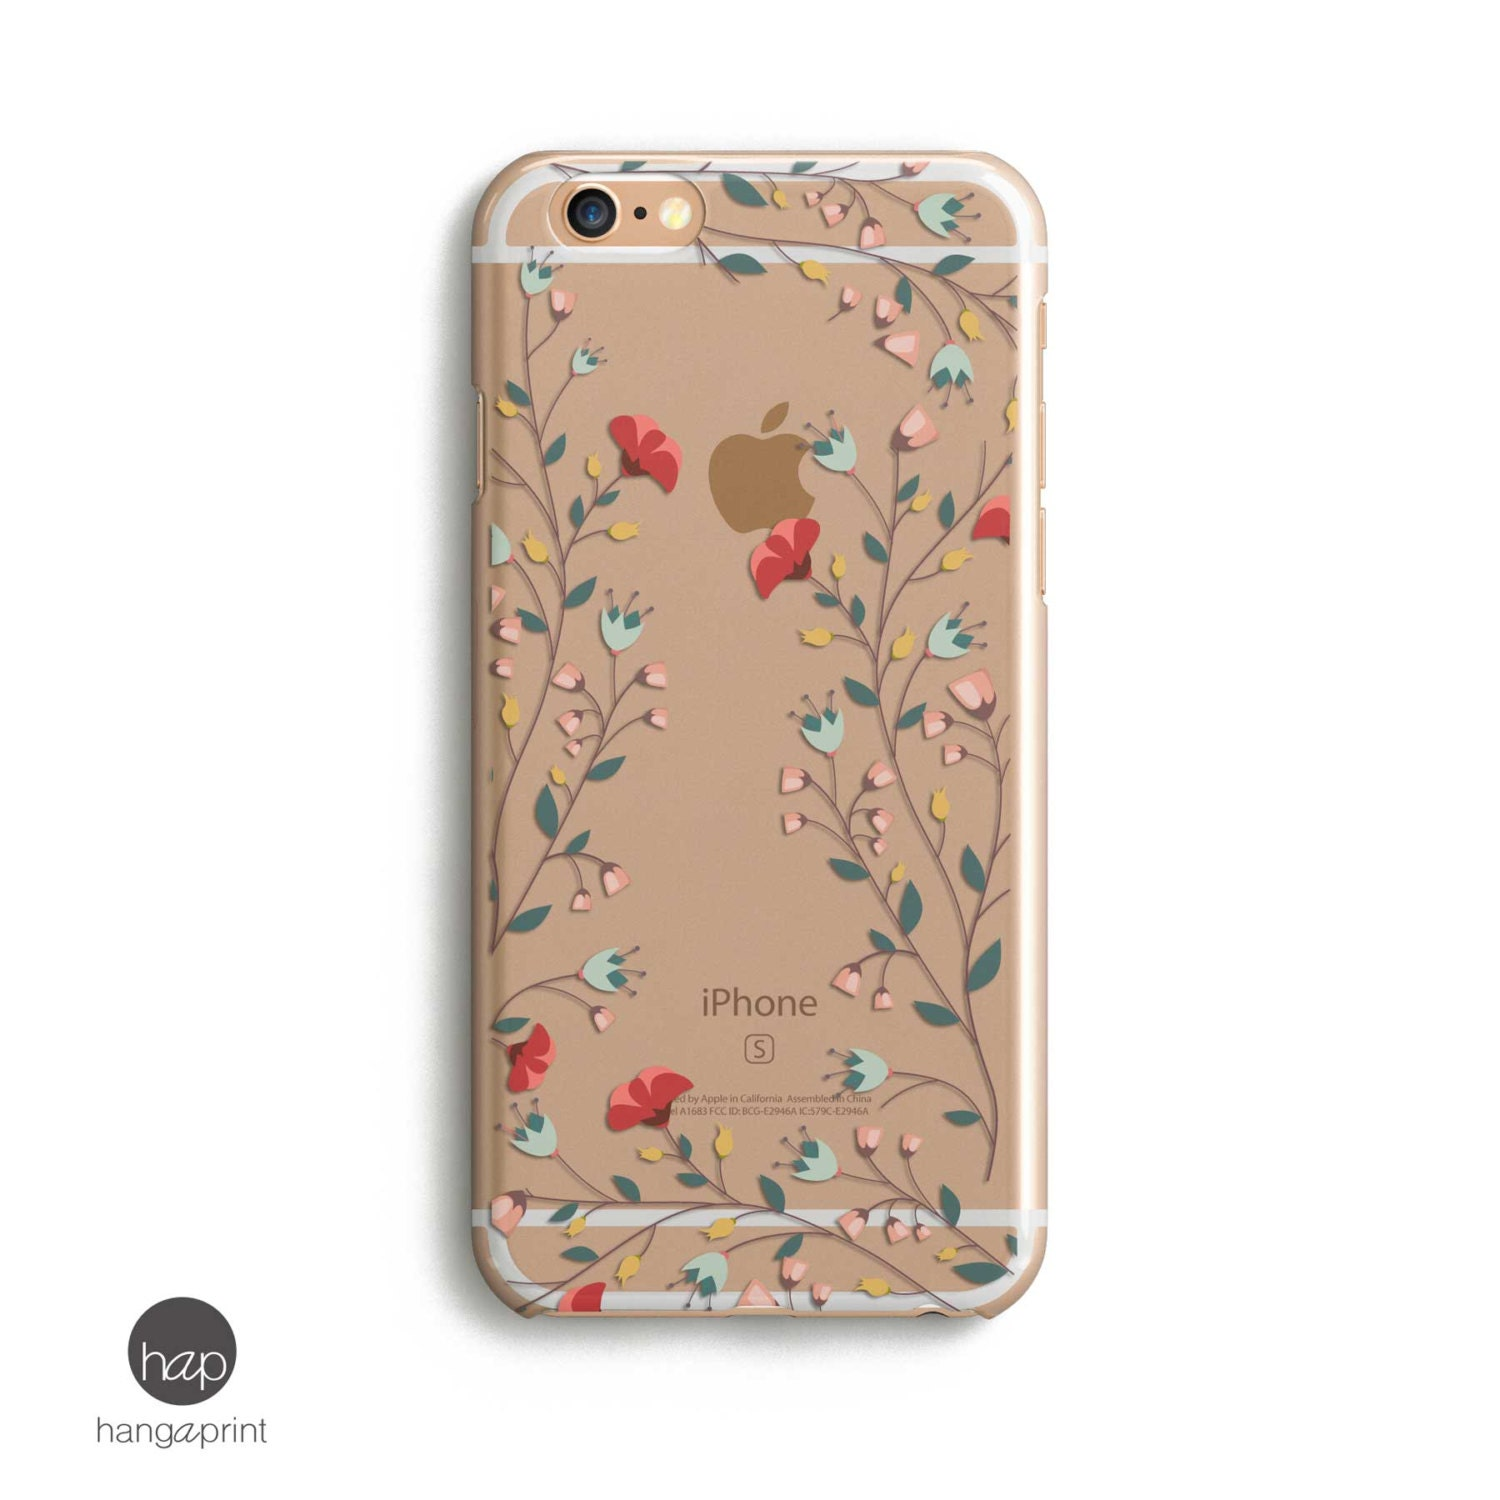 iphone 6 case with flowers